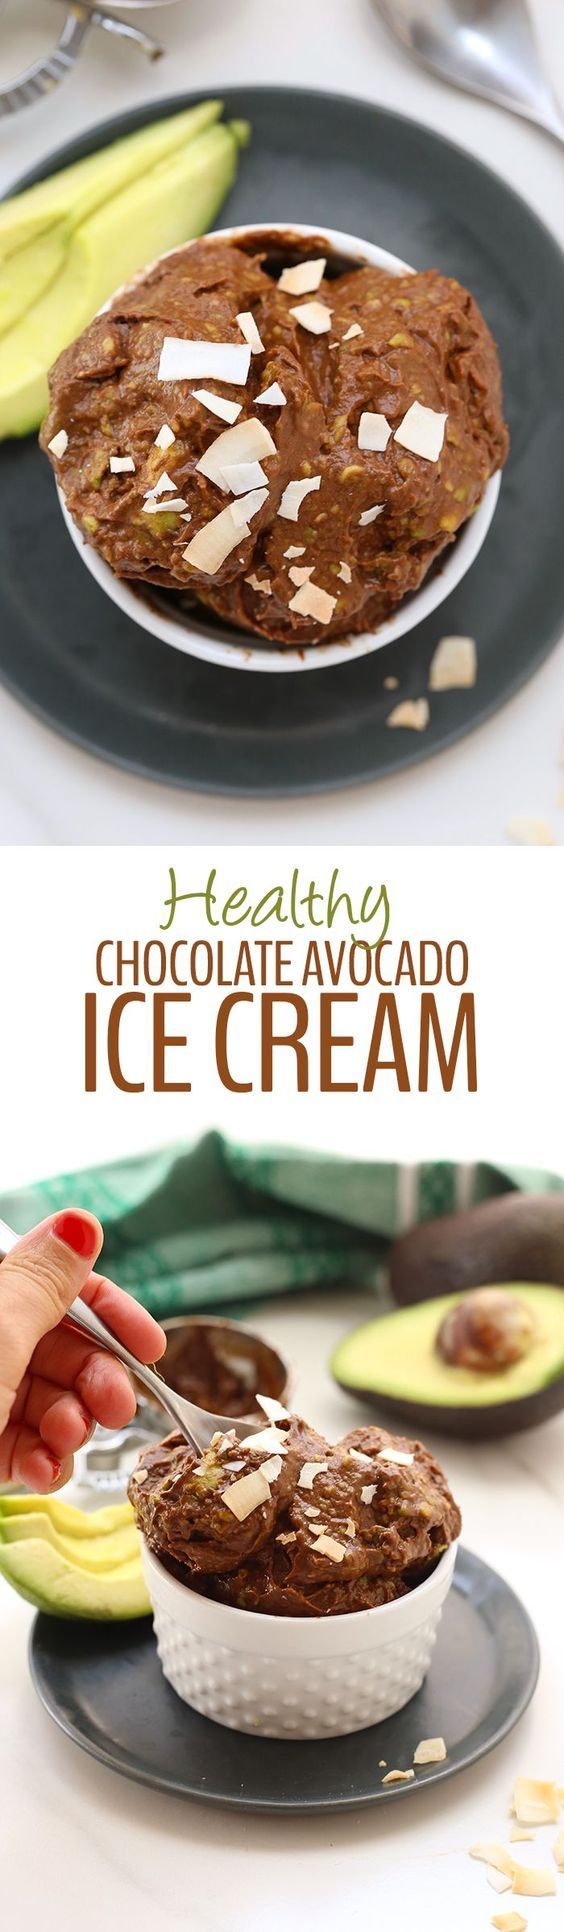 4 Ingredients is all you need for this NoChurn Healthy Chocolate Avocado Ice Cream. The perfect summer dessert recipe made for whole foods and ready in 5 minutes or less.